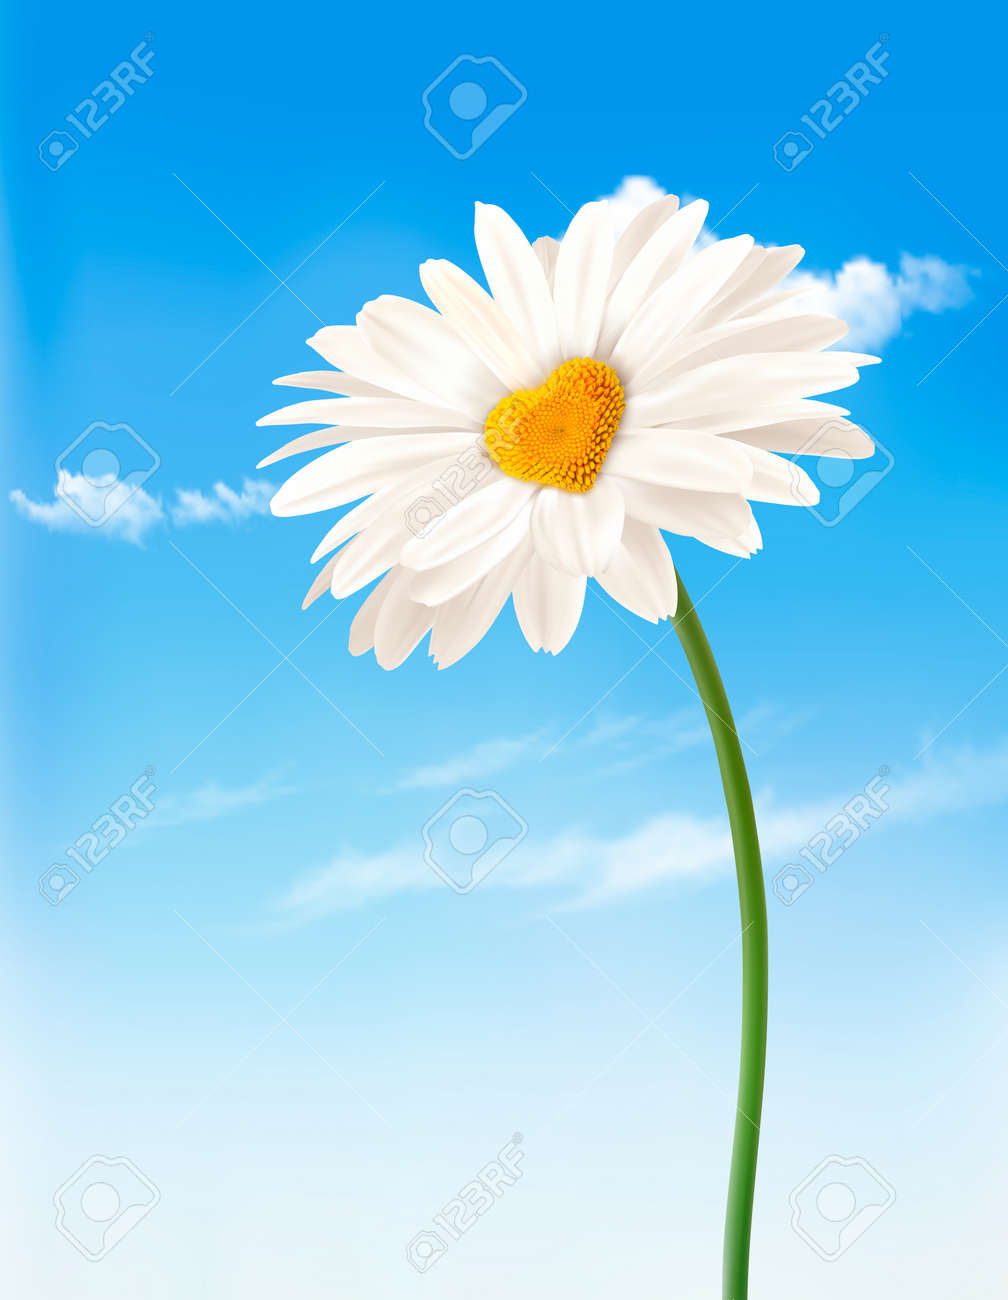 Daisy with heart shaped middle. Valentine's Day background. Vector. - 51833285